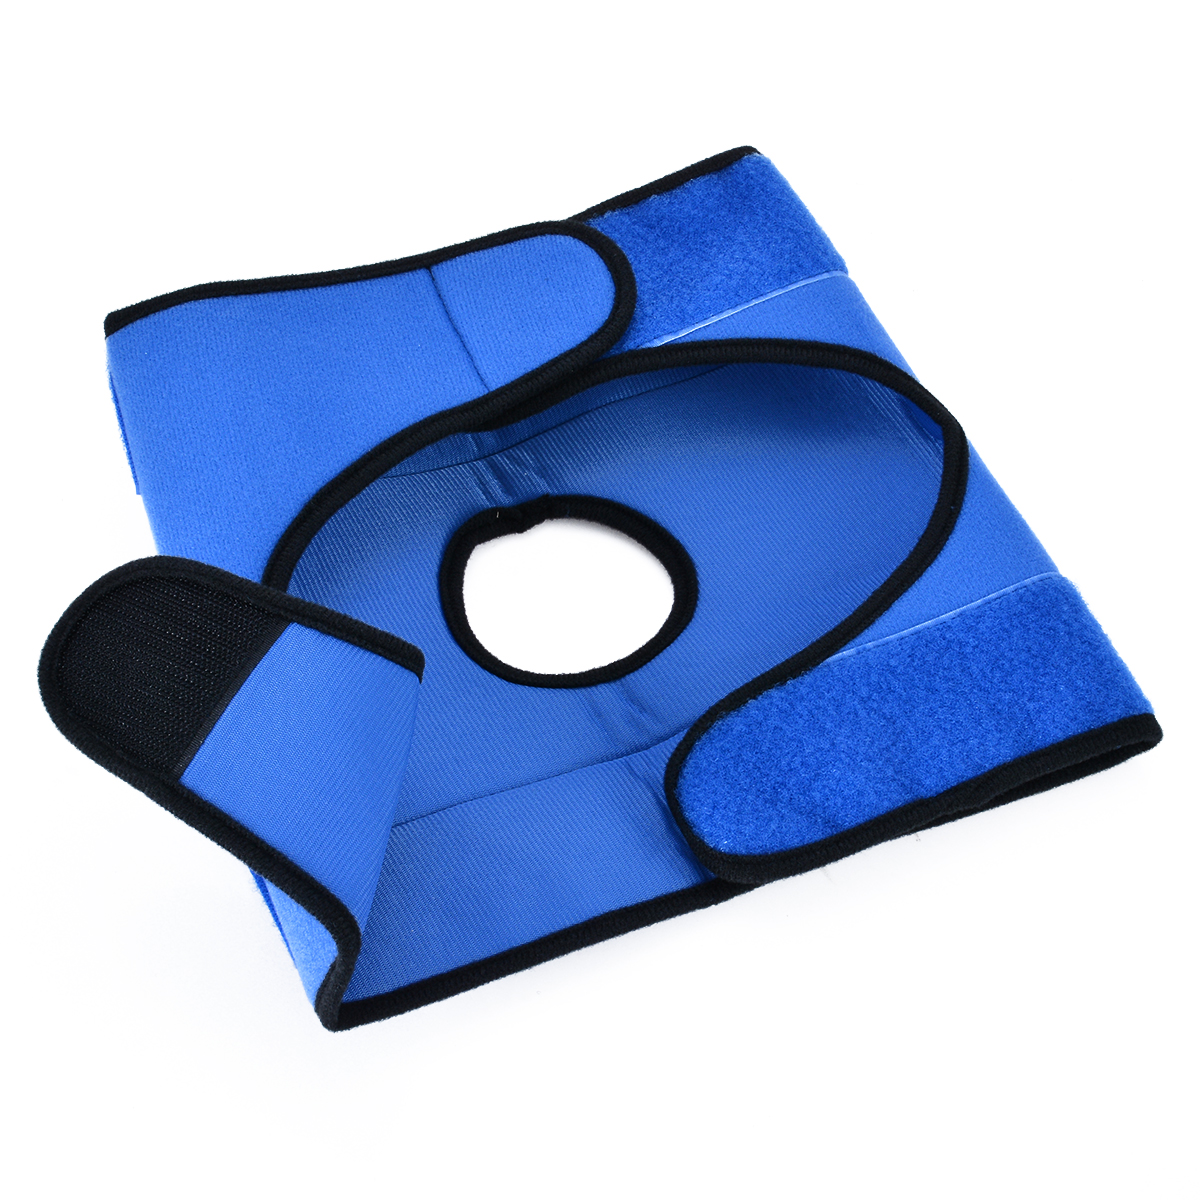 Mayitr Reusable Knee Waist Pain Relief Hot Cold For Ice Bag Bandage Ice Pack Wrap Protector Ice Bag Relaxing Compress